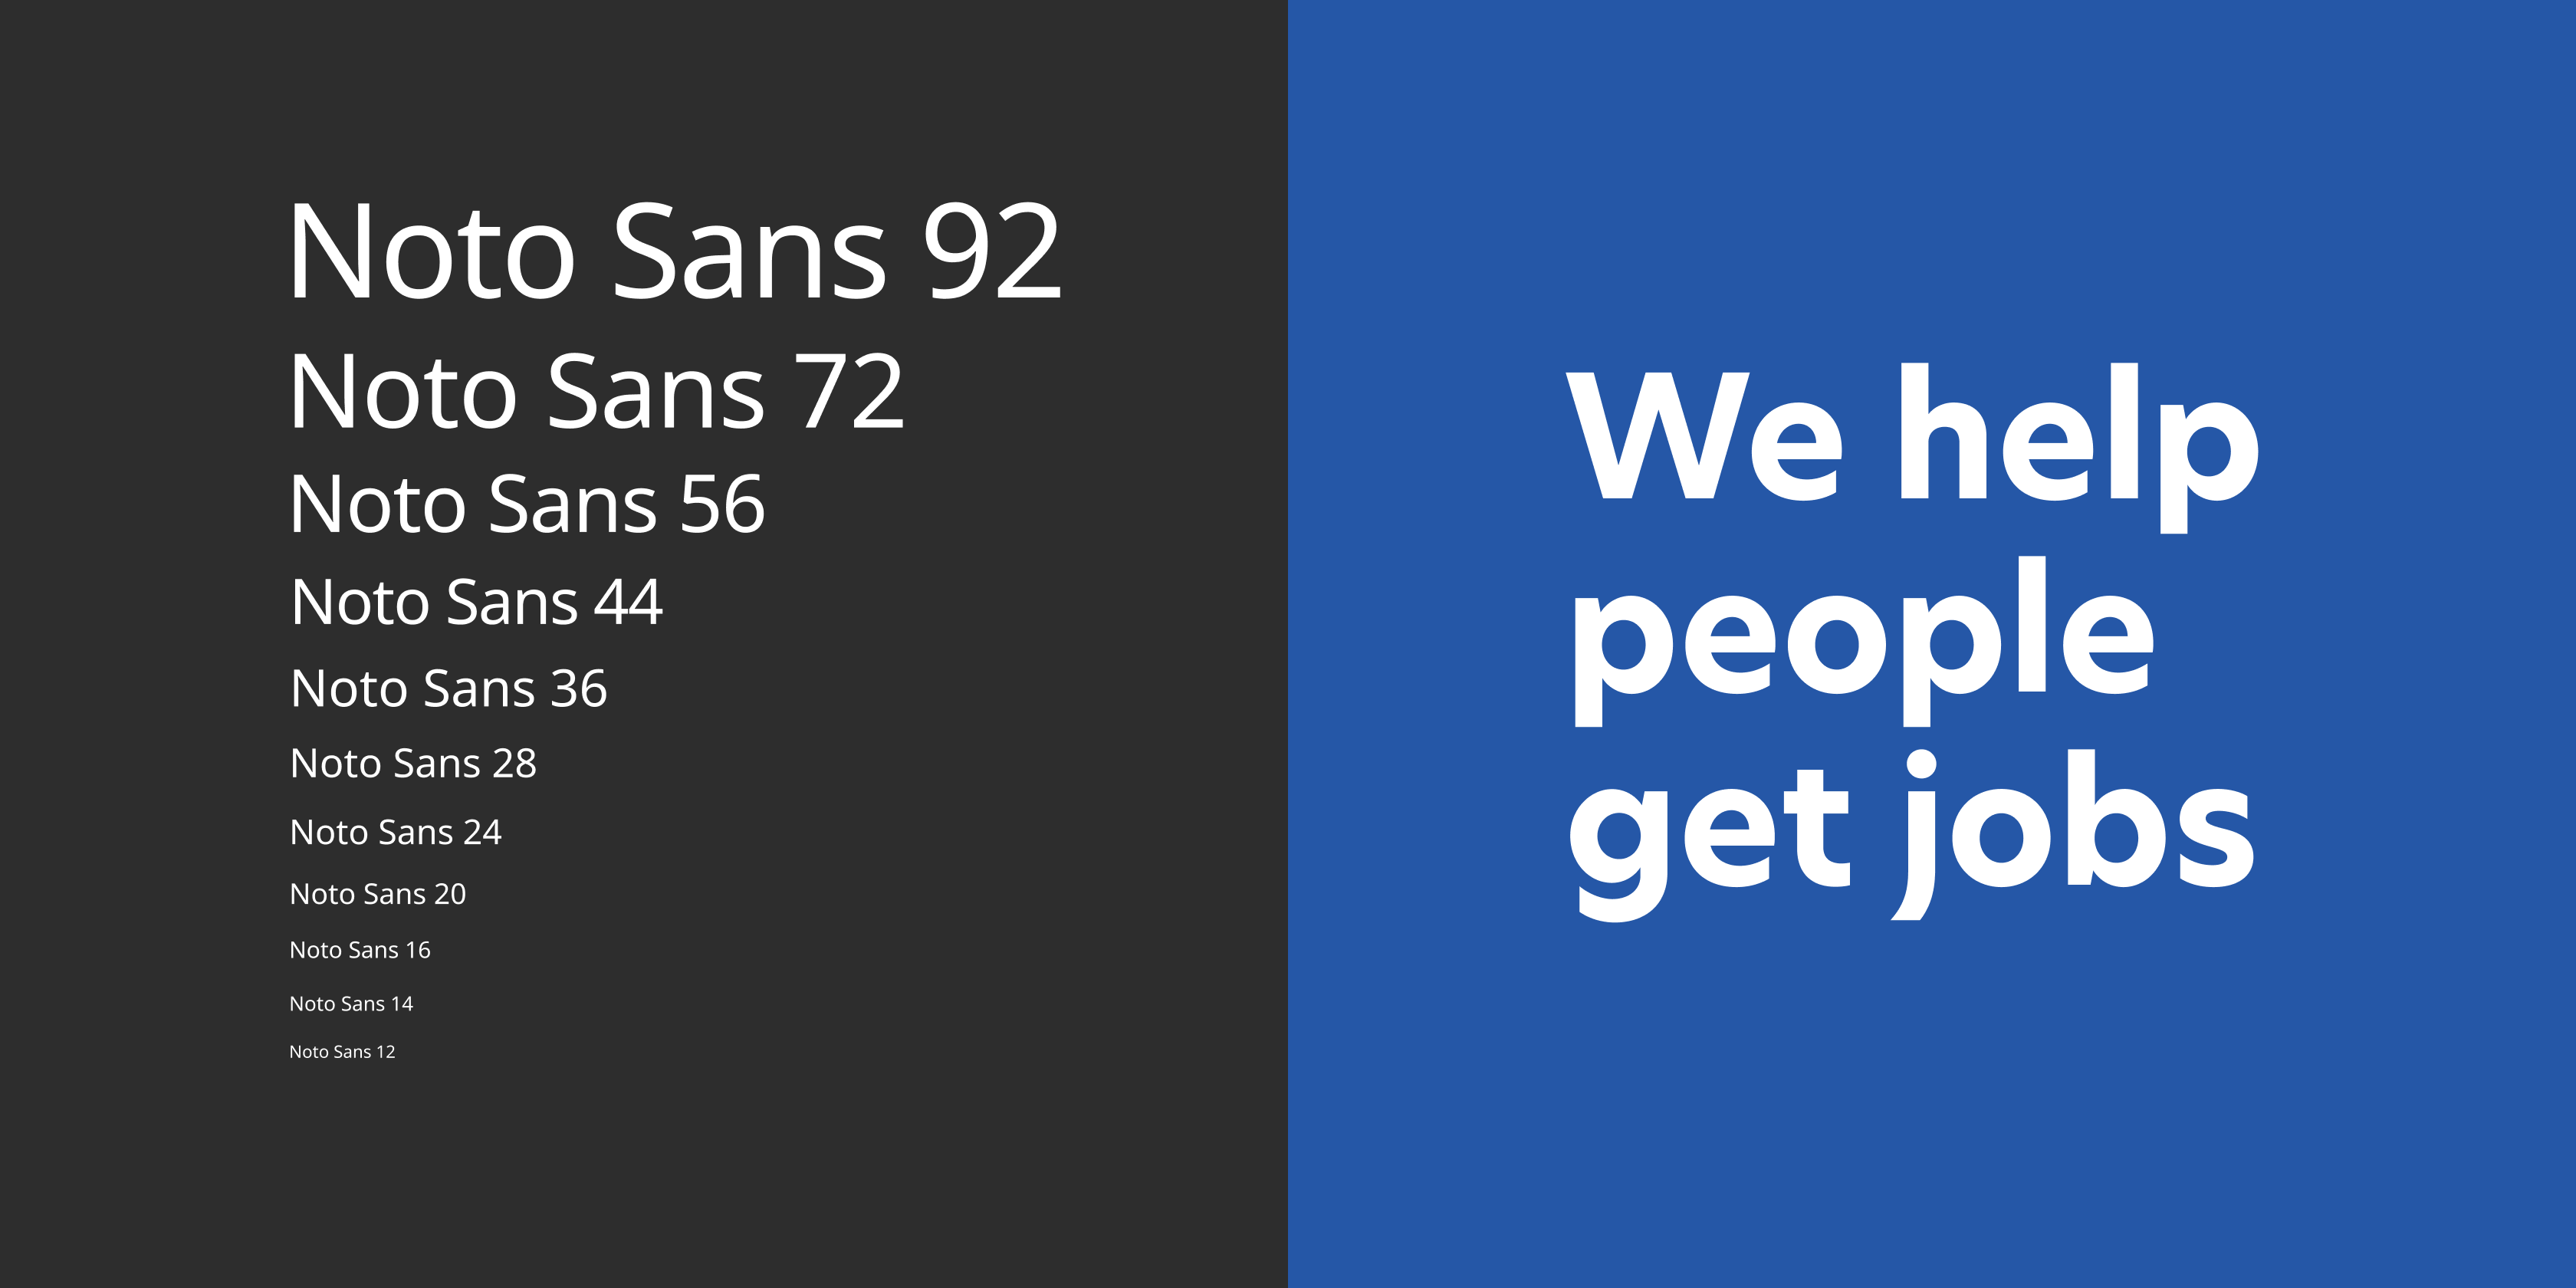 """Split image showing Noto Sans type in different sizes next to text """"We help people get jobs"""" in Indeed Sans."""